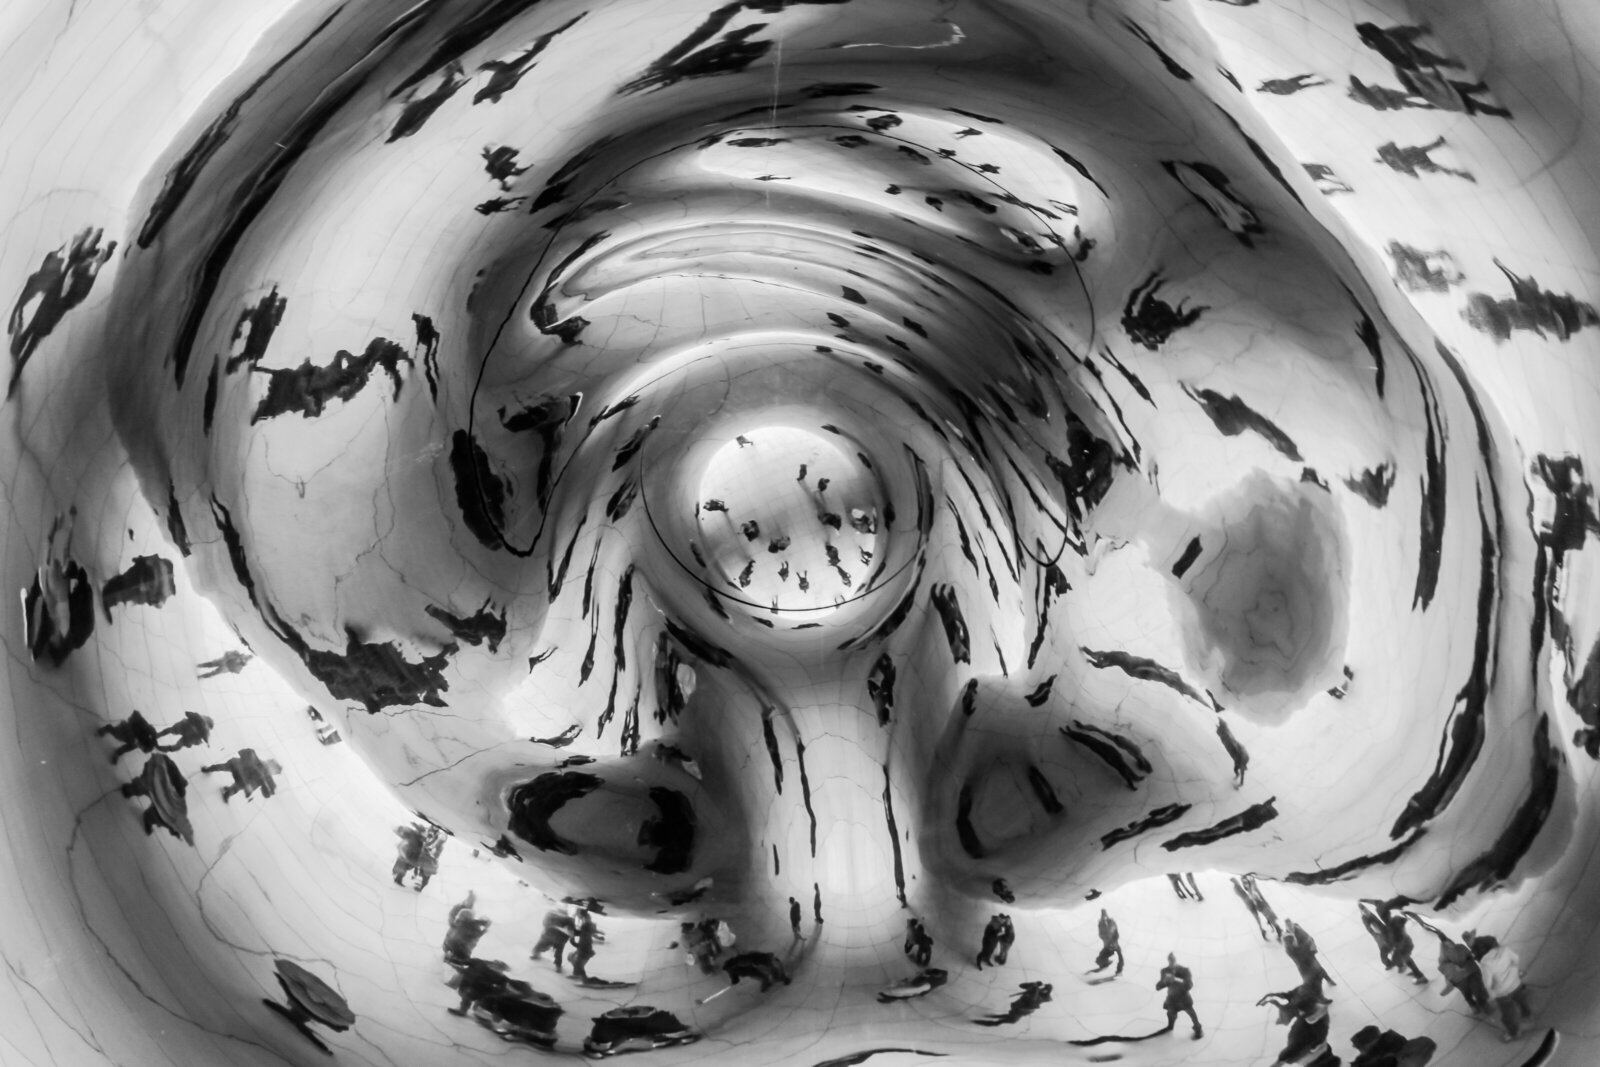 066-KBP-Chicago-Bean-Black-and-White-abstract